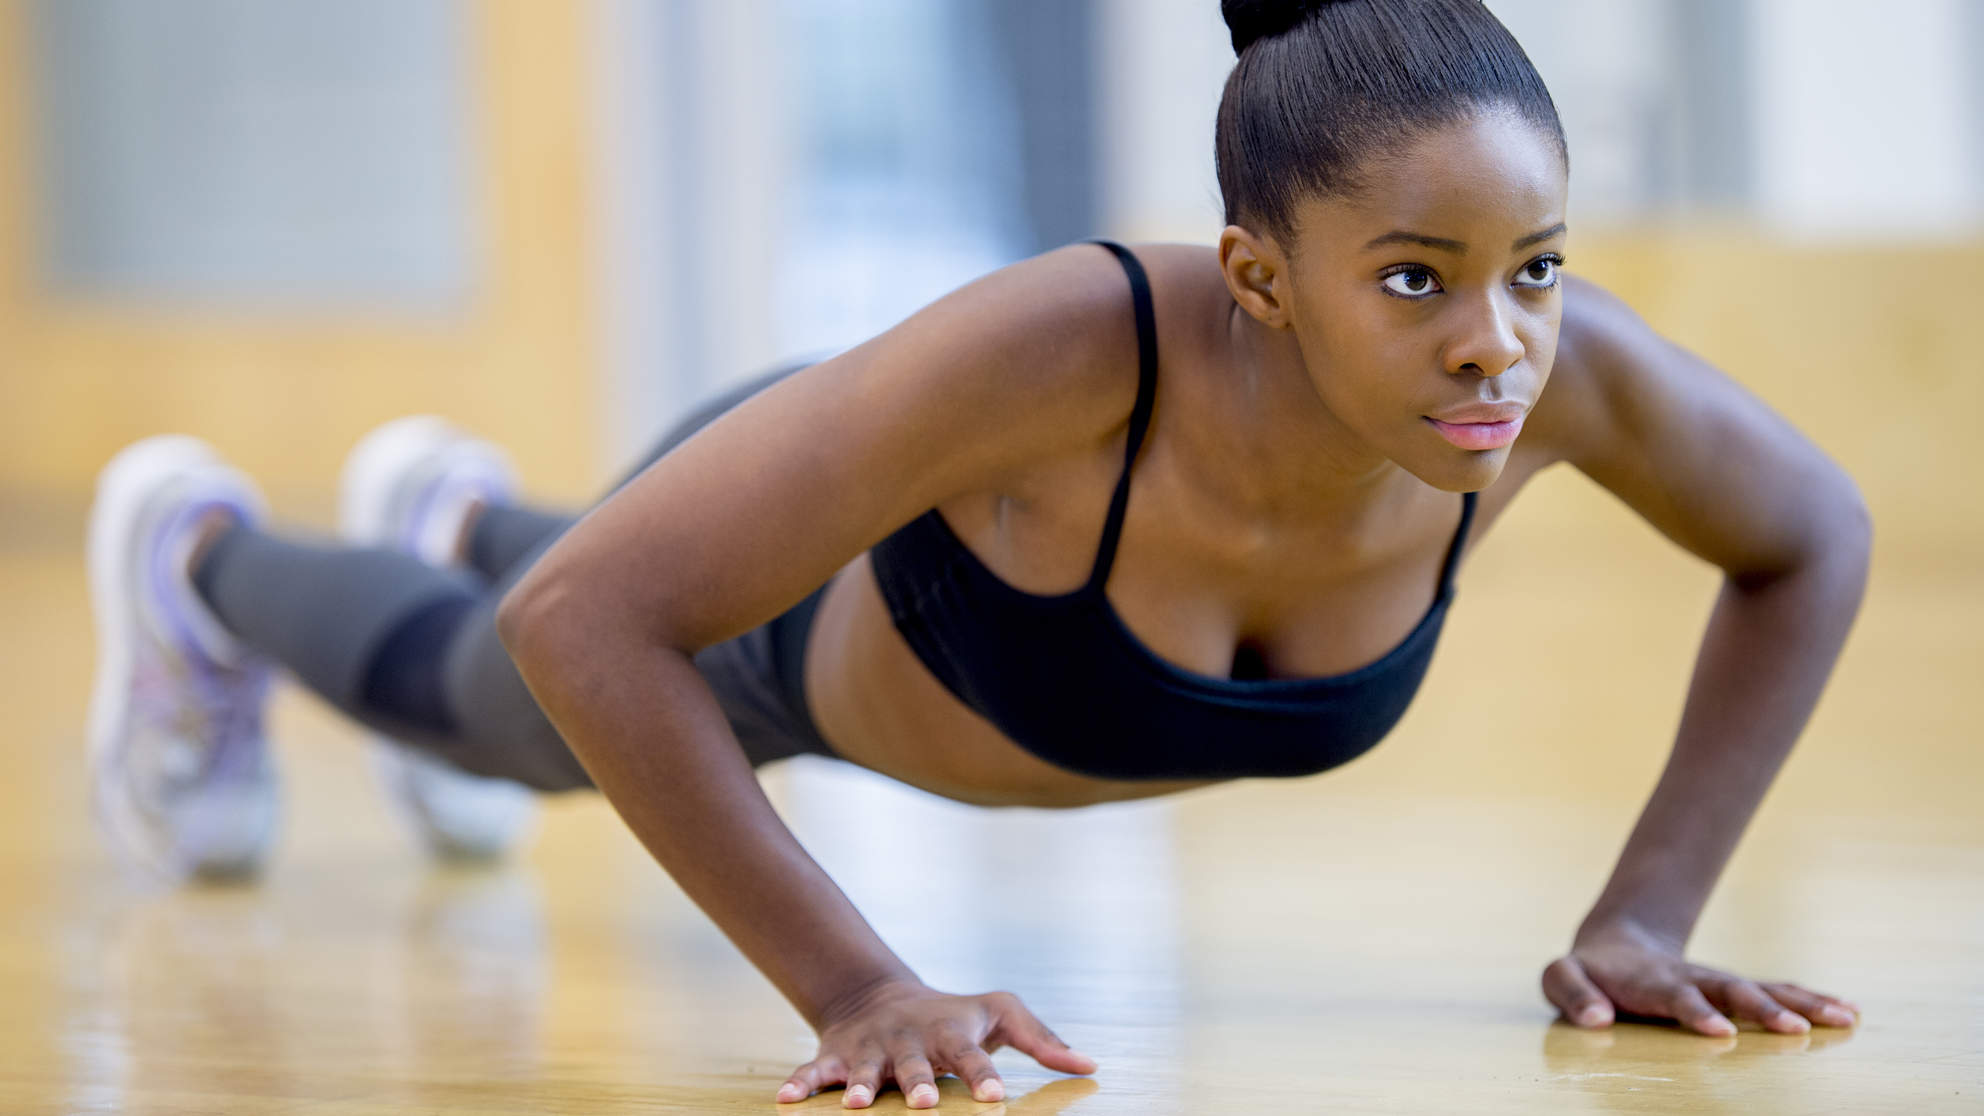 The 15 Minute Home Workout To Survive The Holidays Health